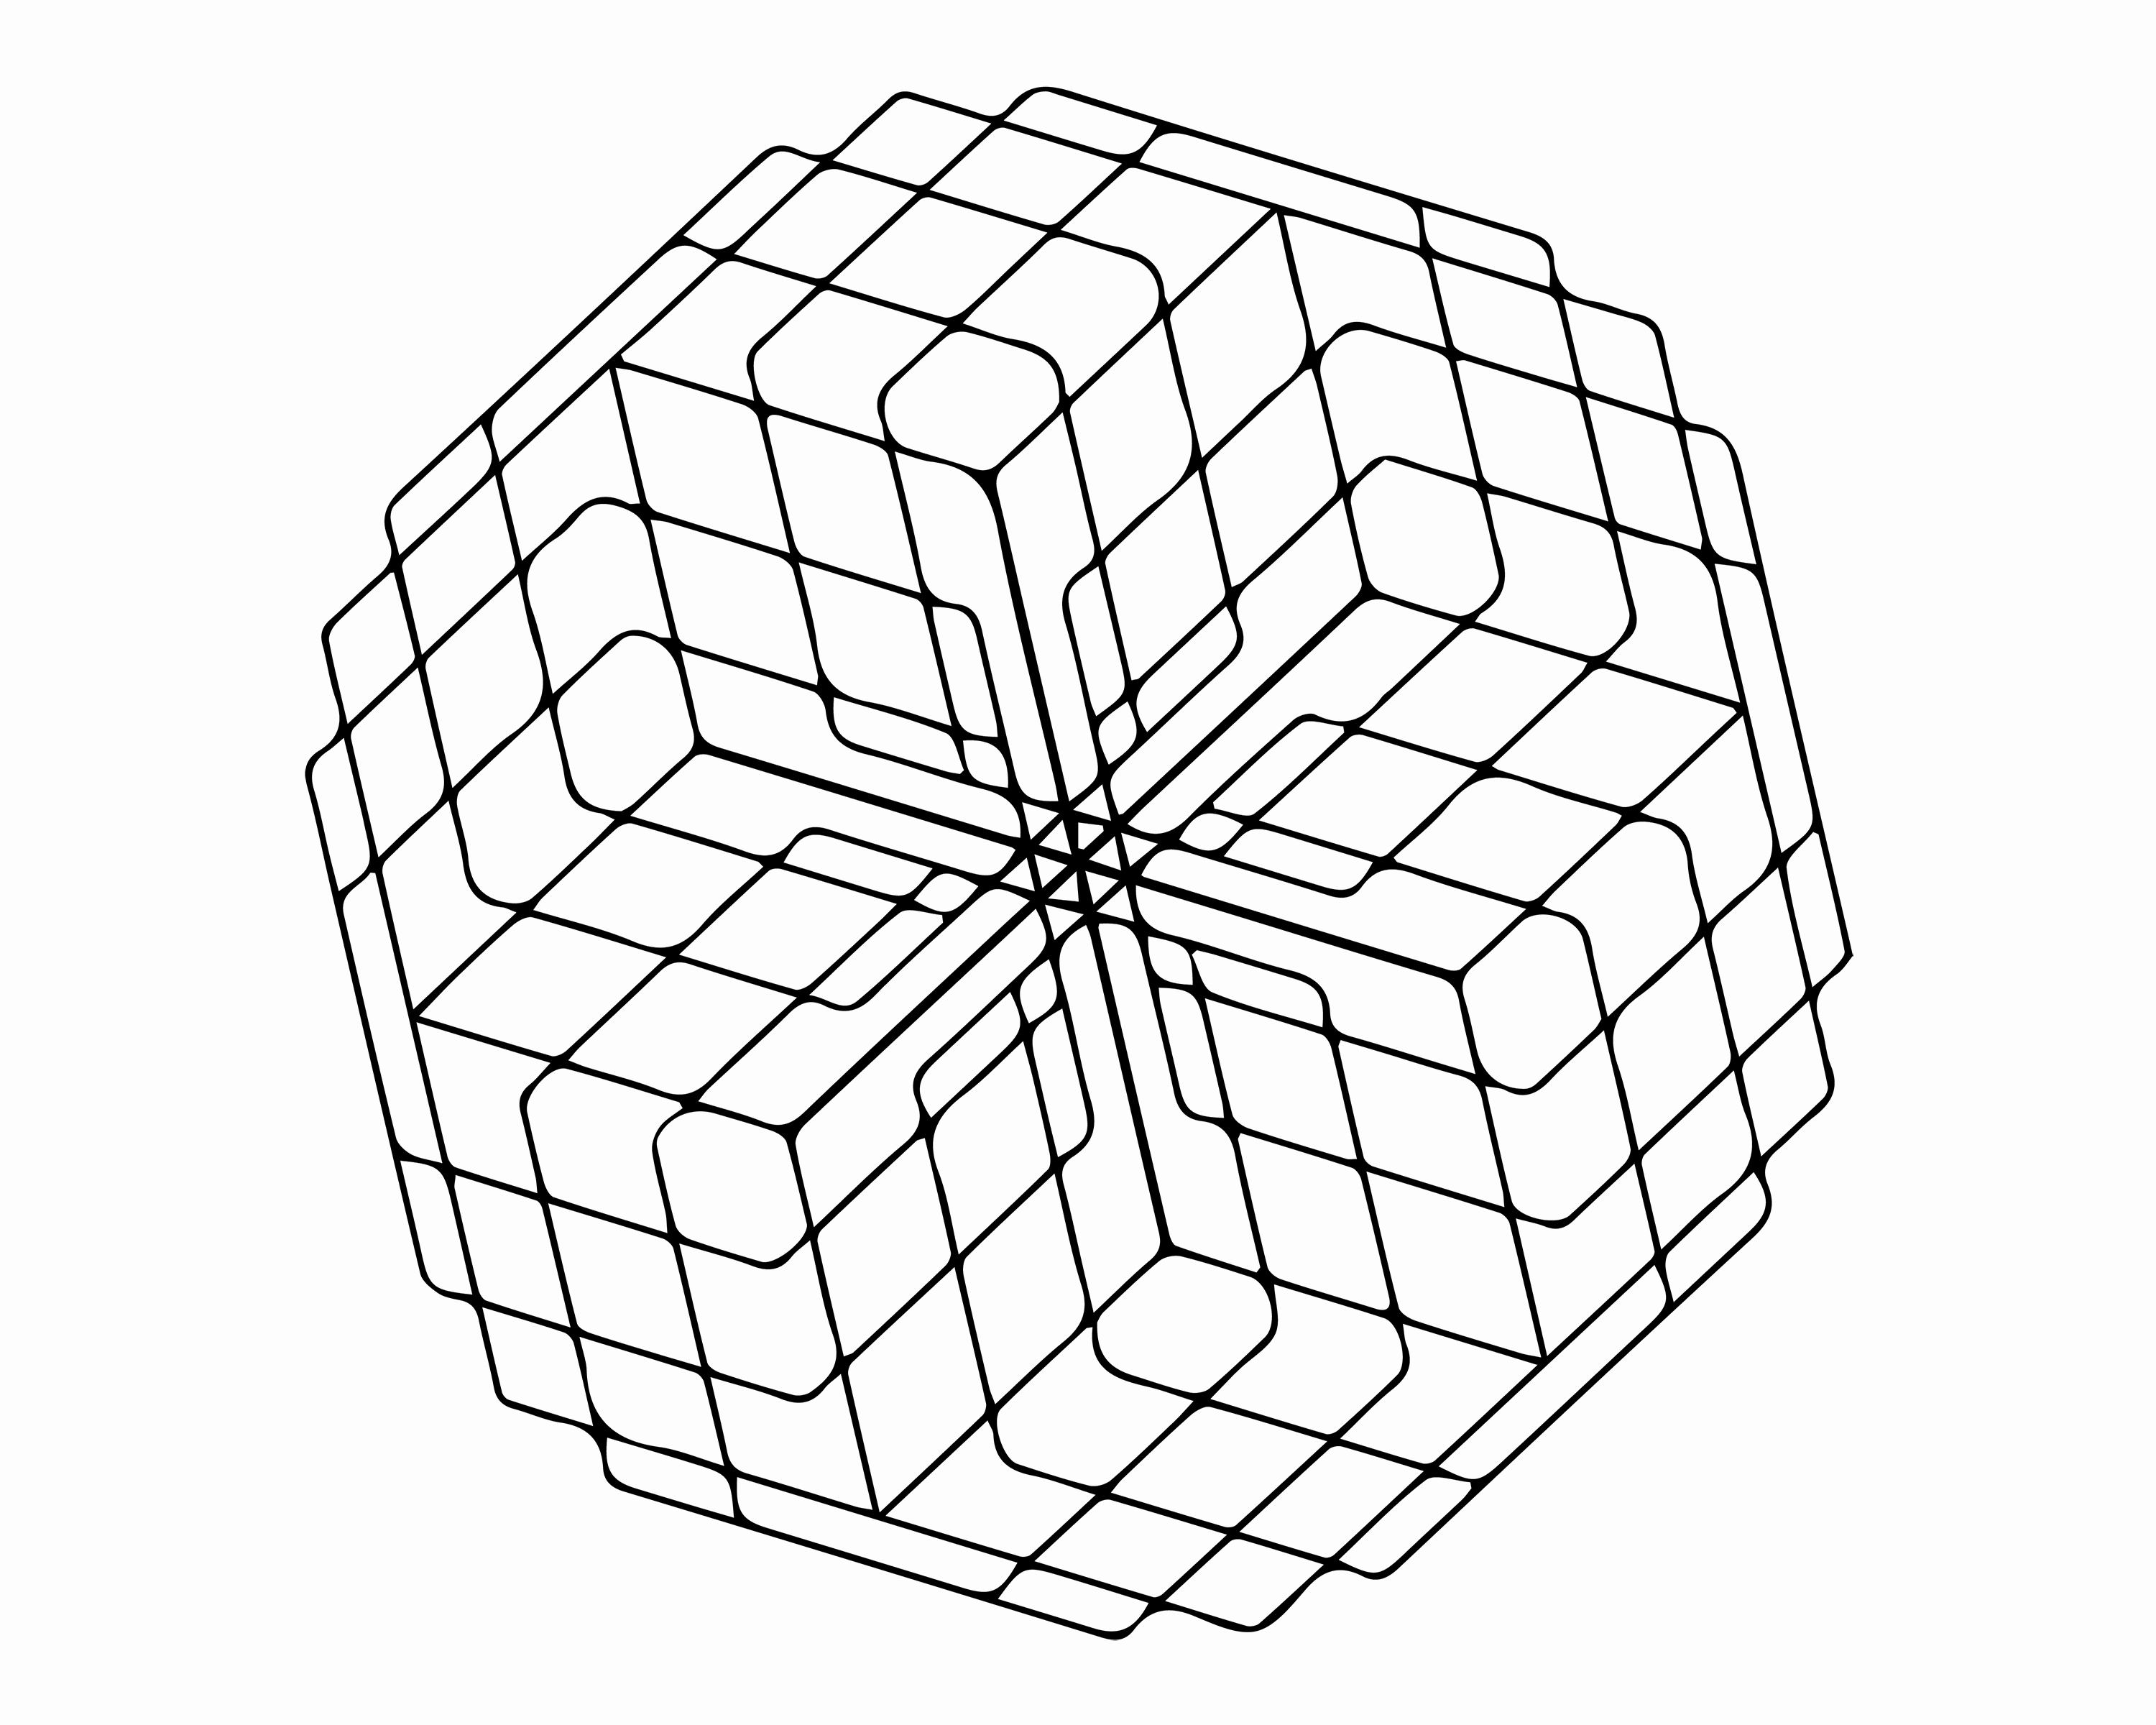 3000x2400 Coloring Pages Image Hd Free For Adults Printable Geometric Shapes